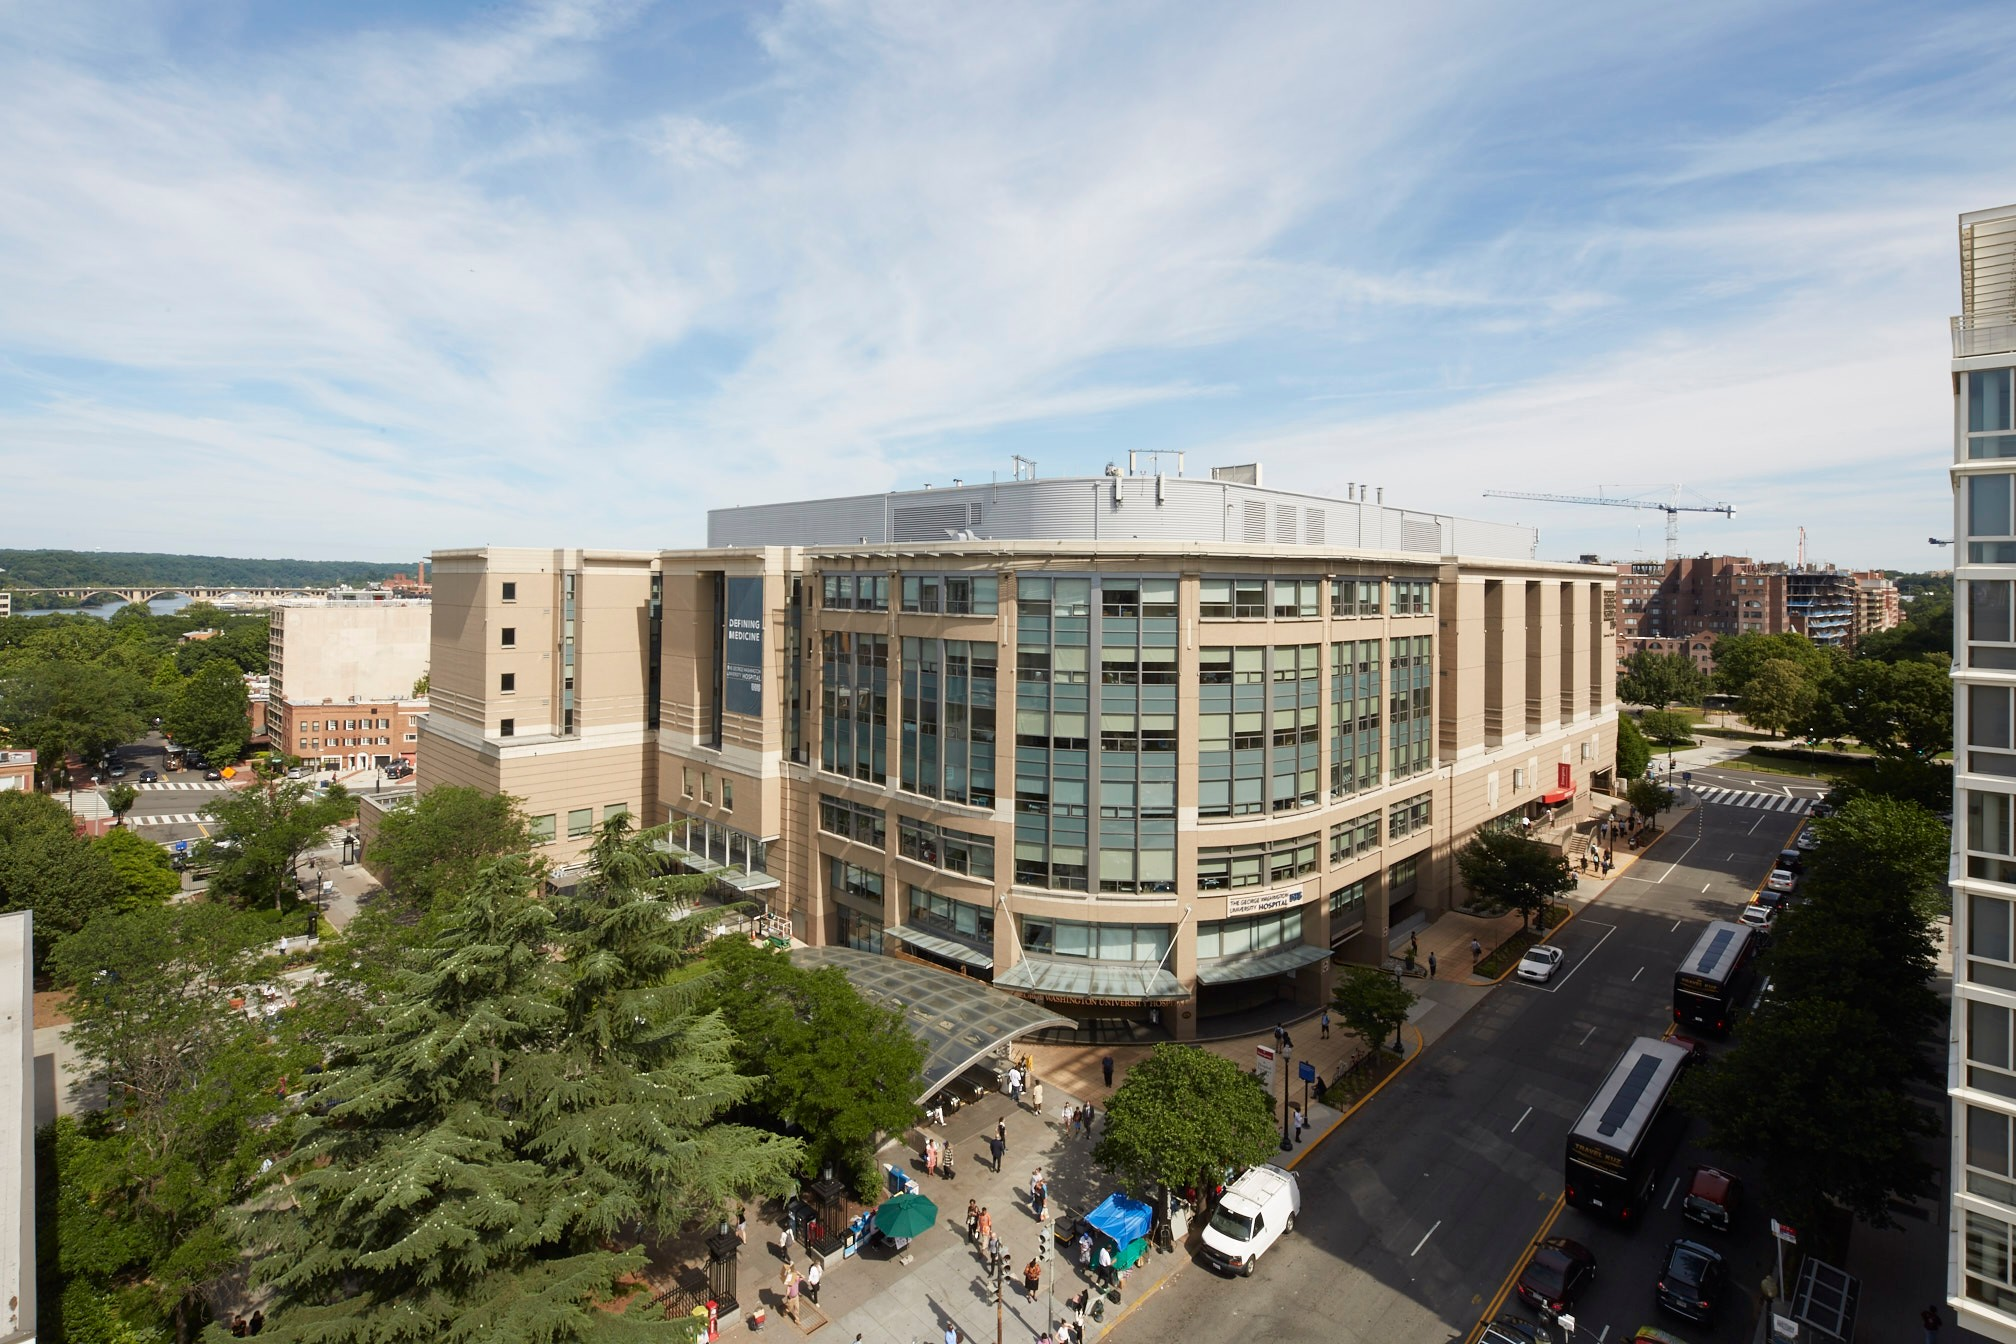 George Washington University Hospital Building